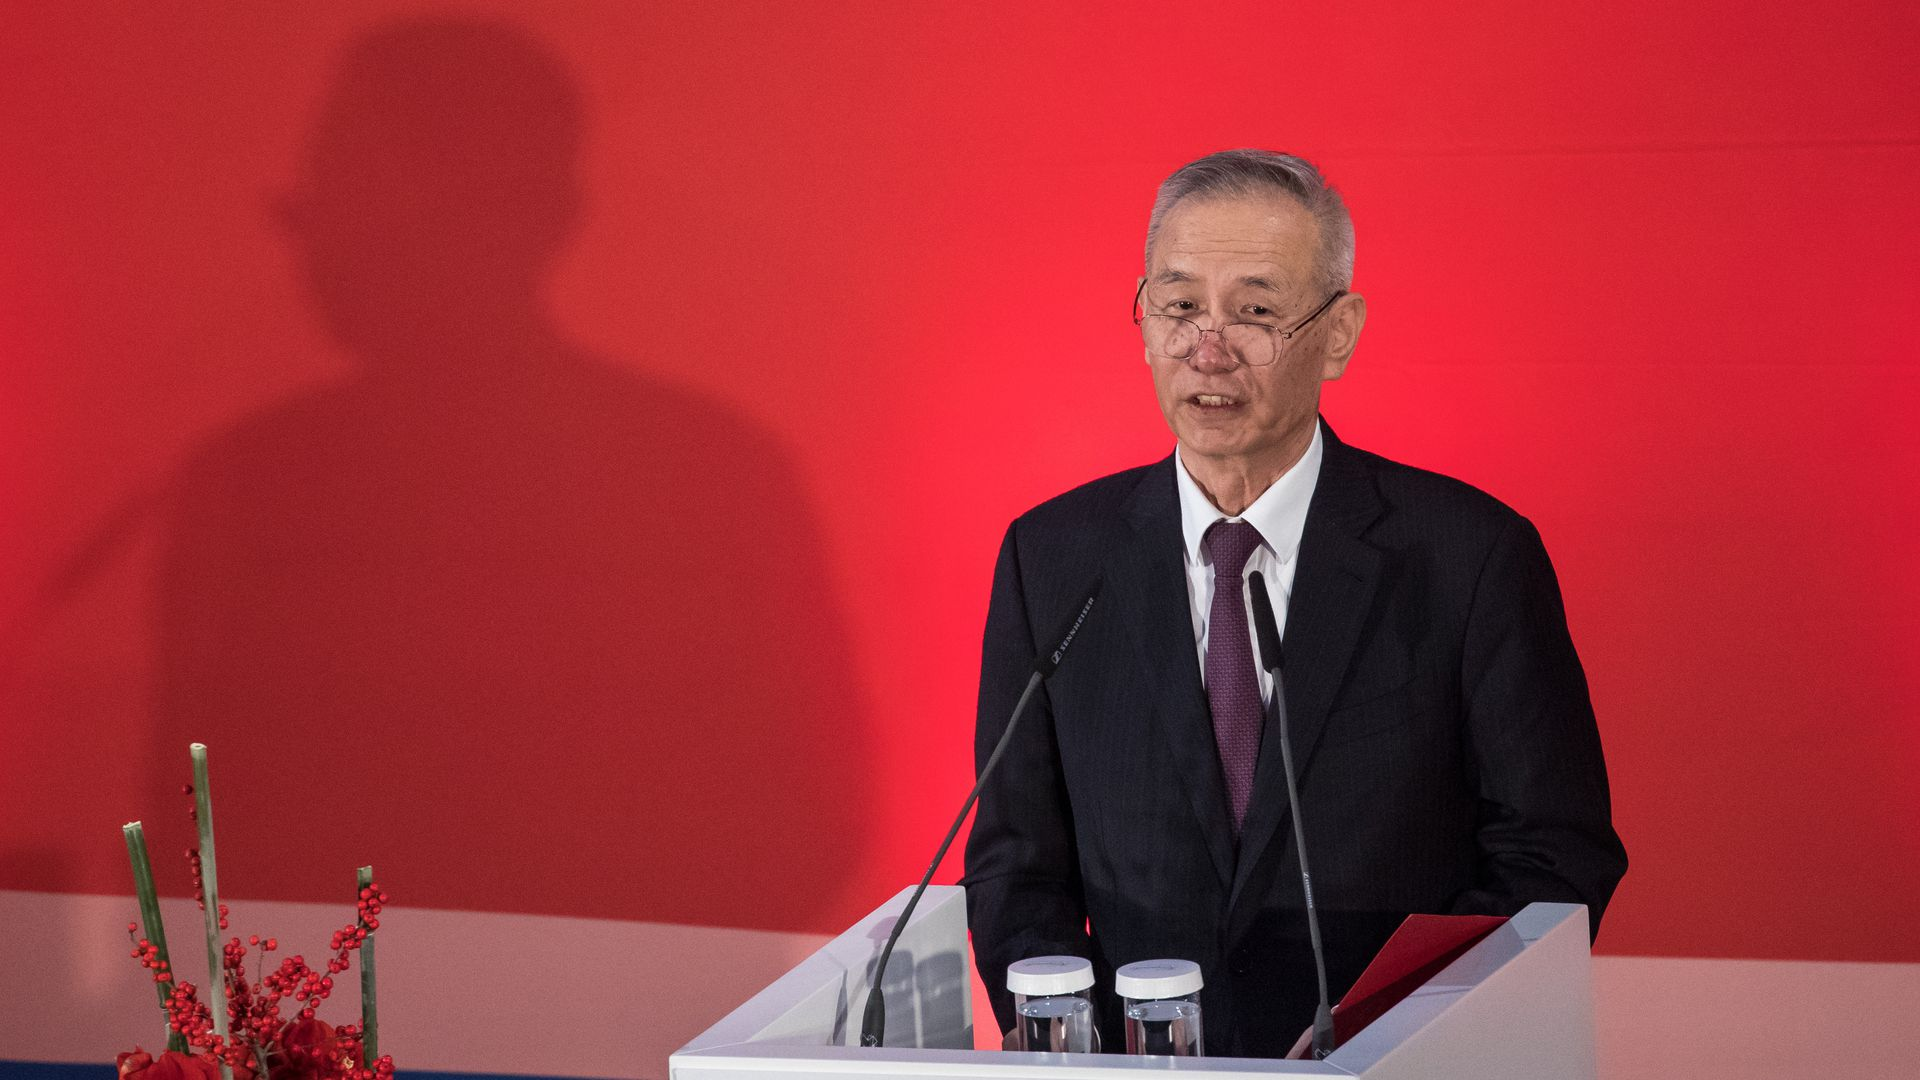 Liu He, Deputy Prime Minister of the People's Republic of China, speaks at the conference 'The Hamburg Summit